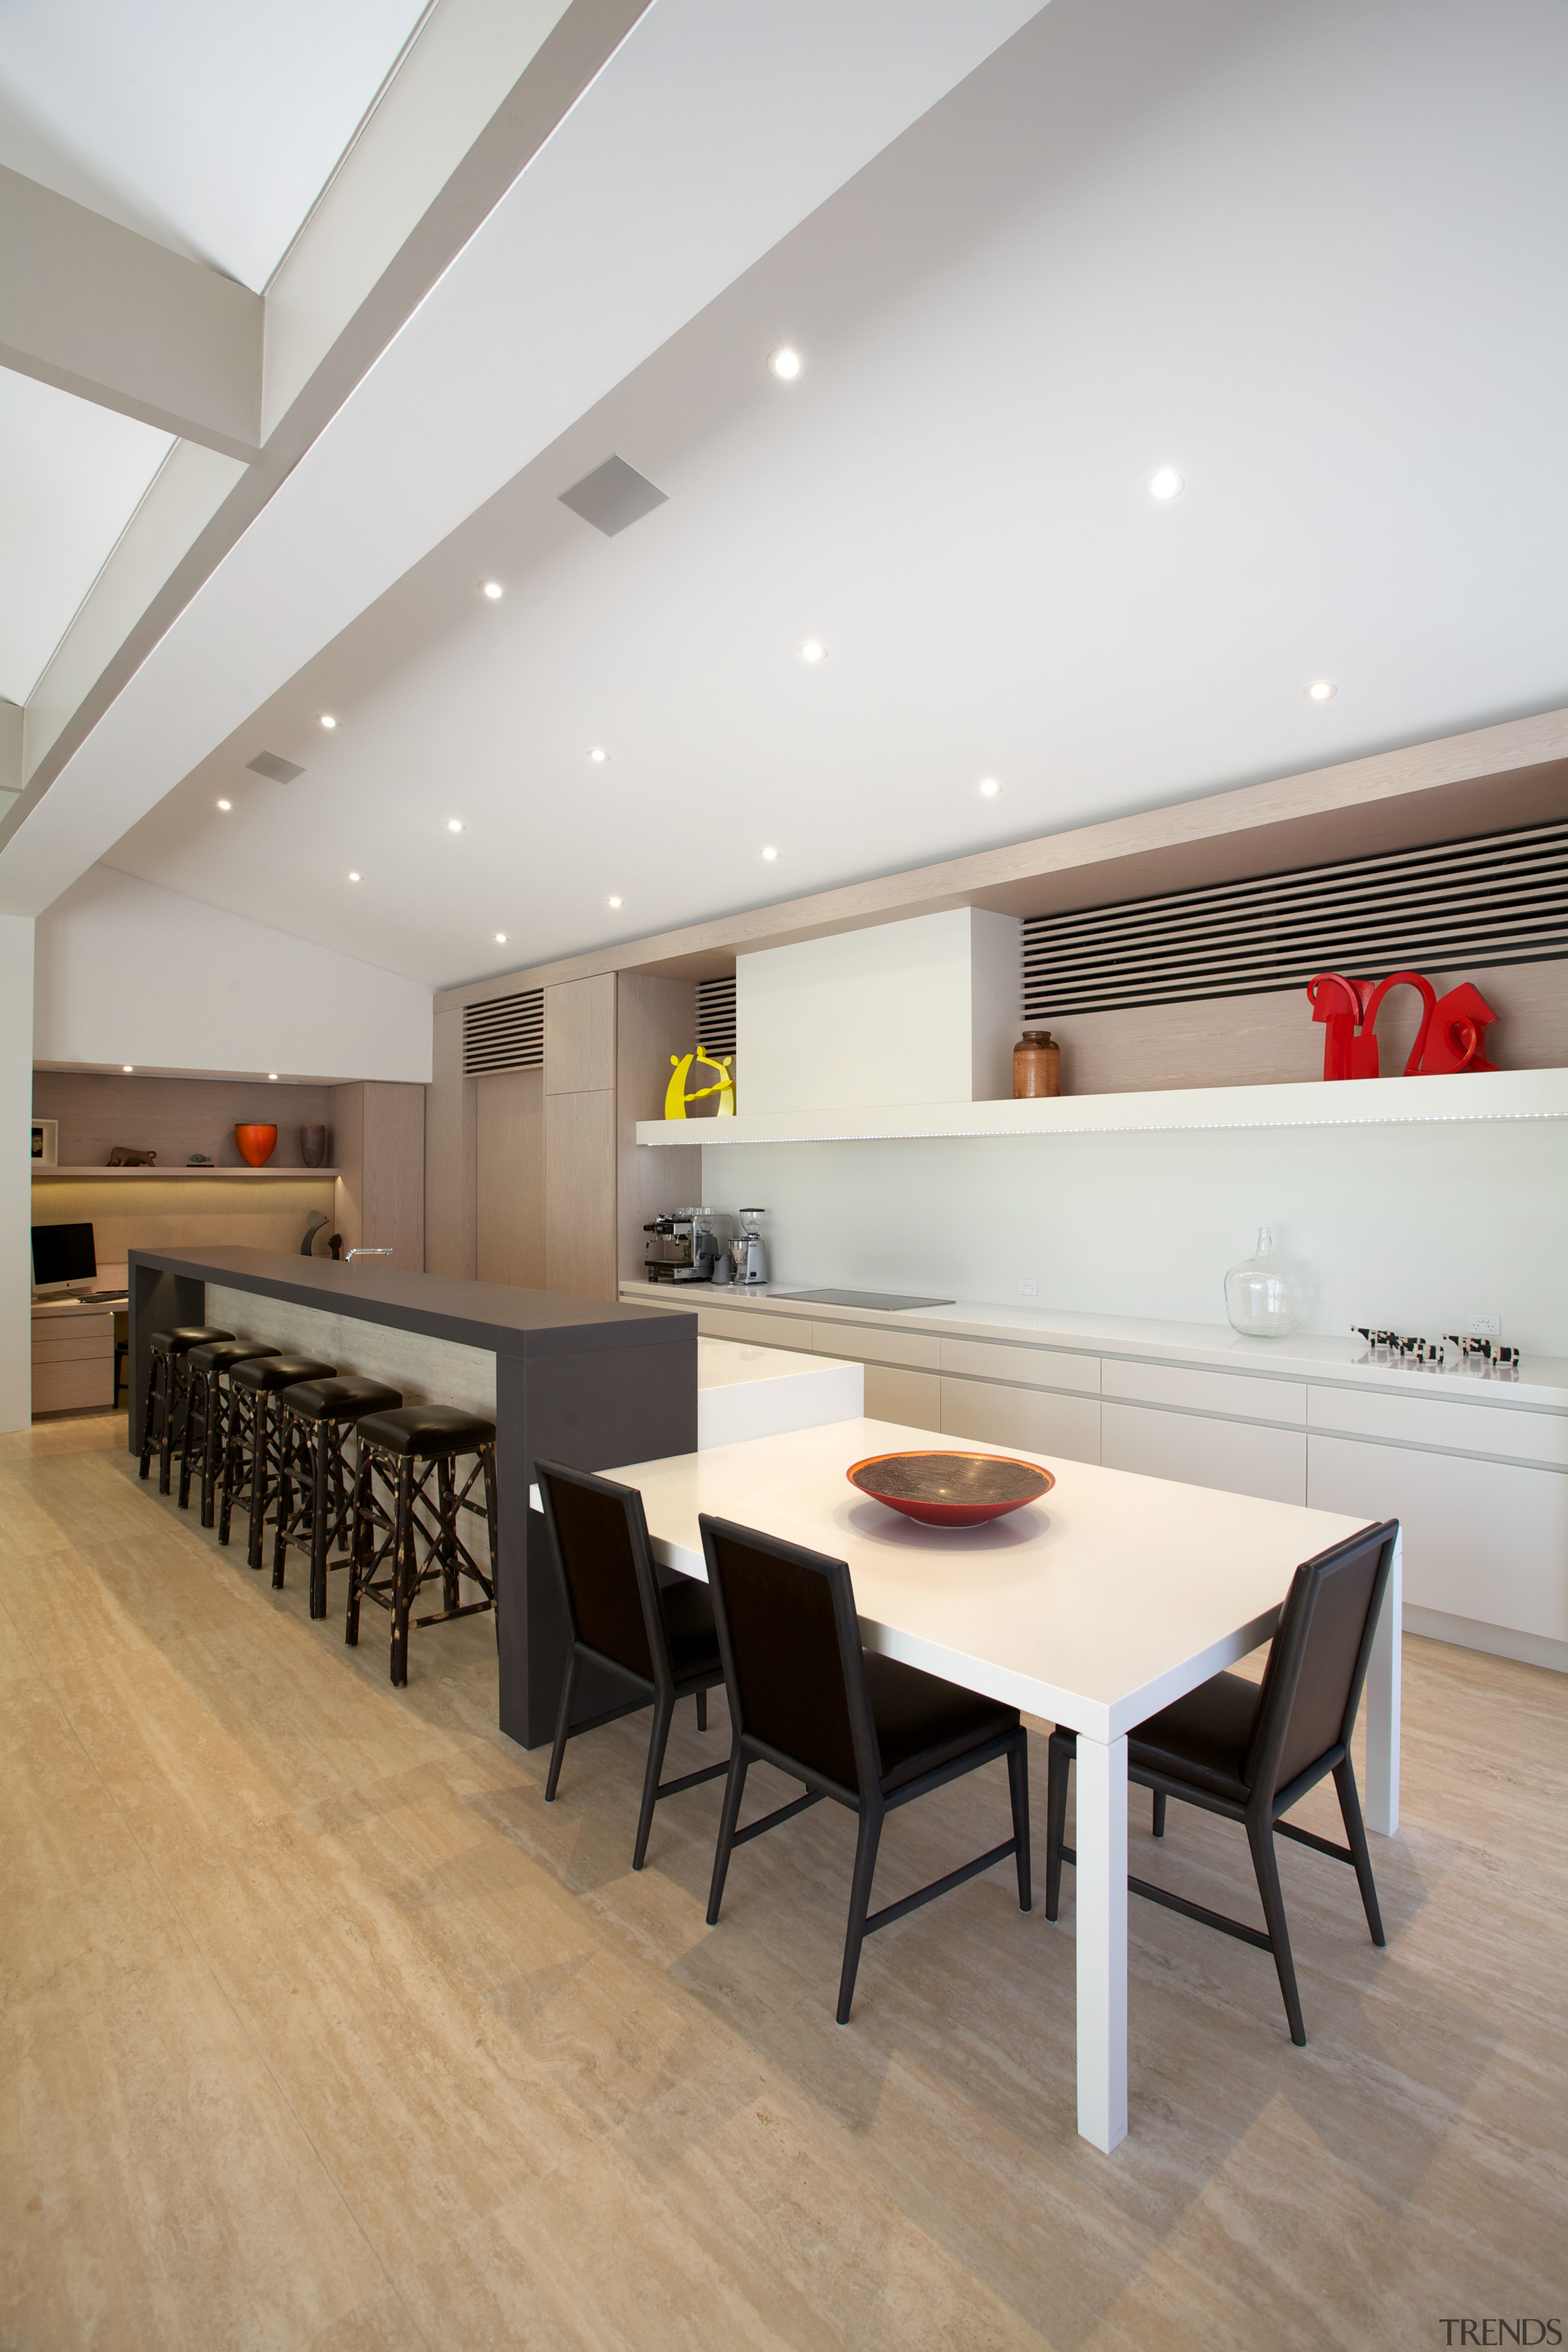 This new kitchen designed by Leon House features architecture, ceiling, dining room, floor, flooring, furniture, interior design, table, wood flooring, gray